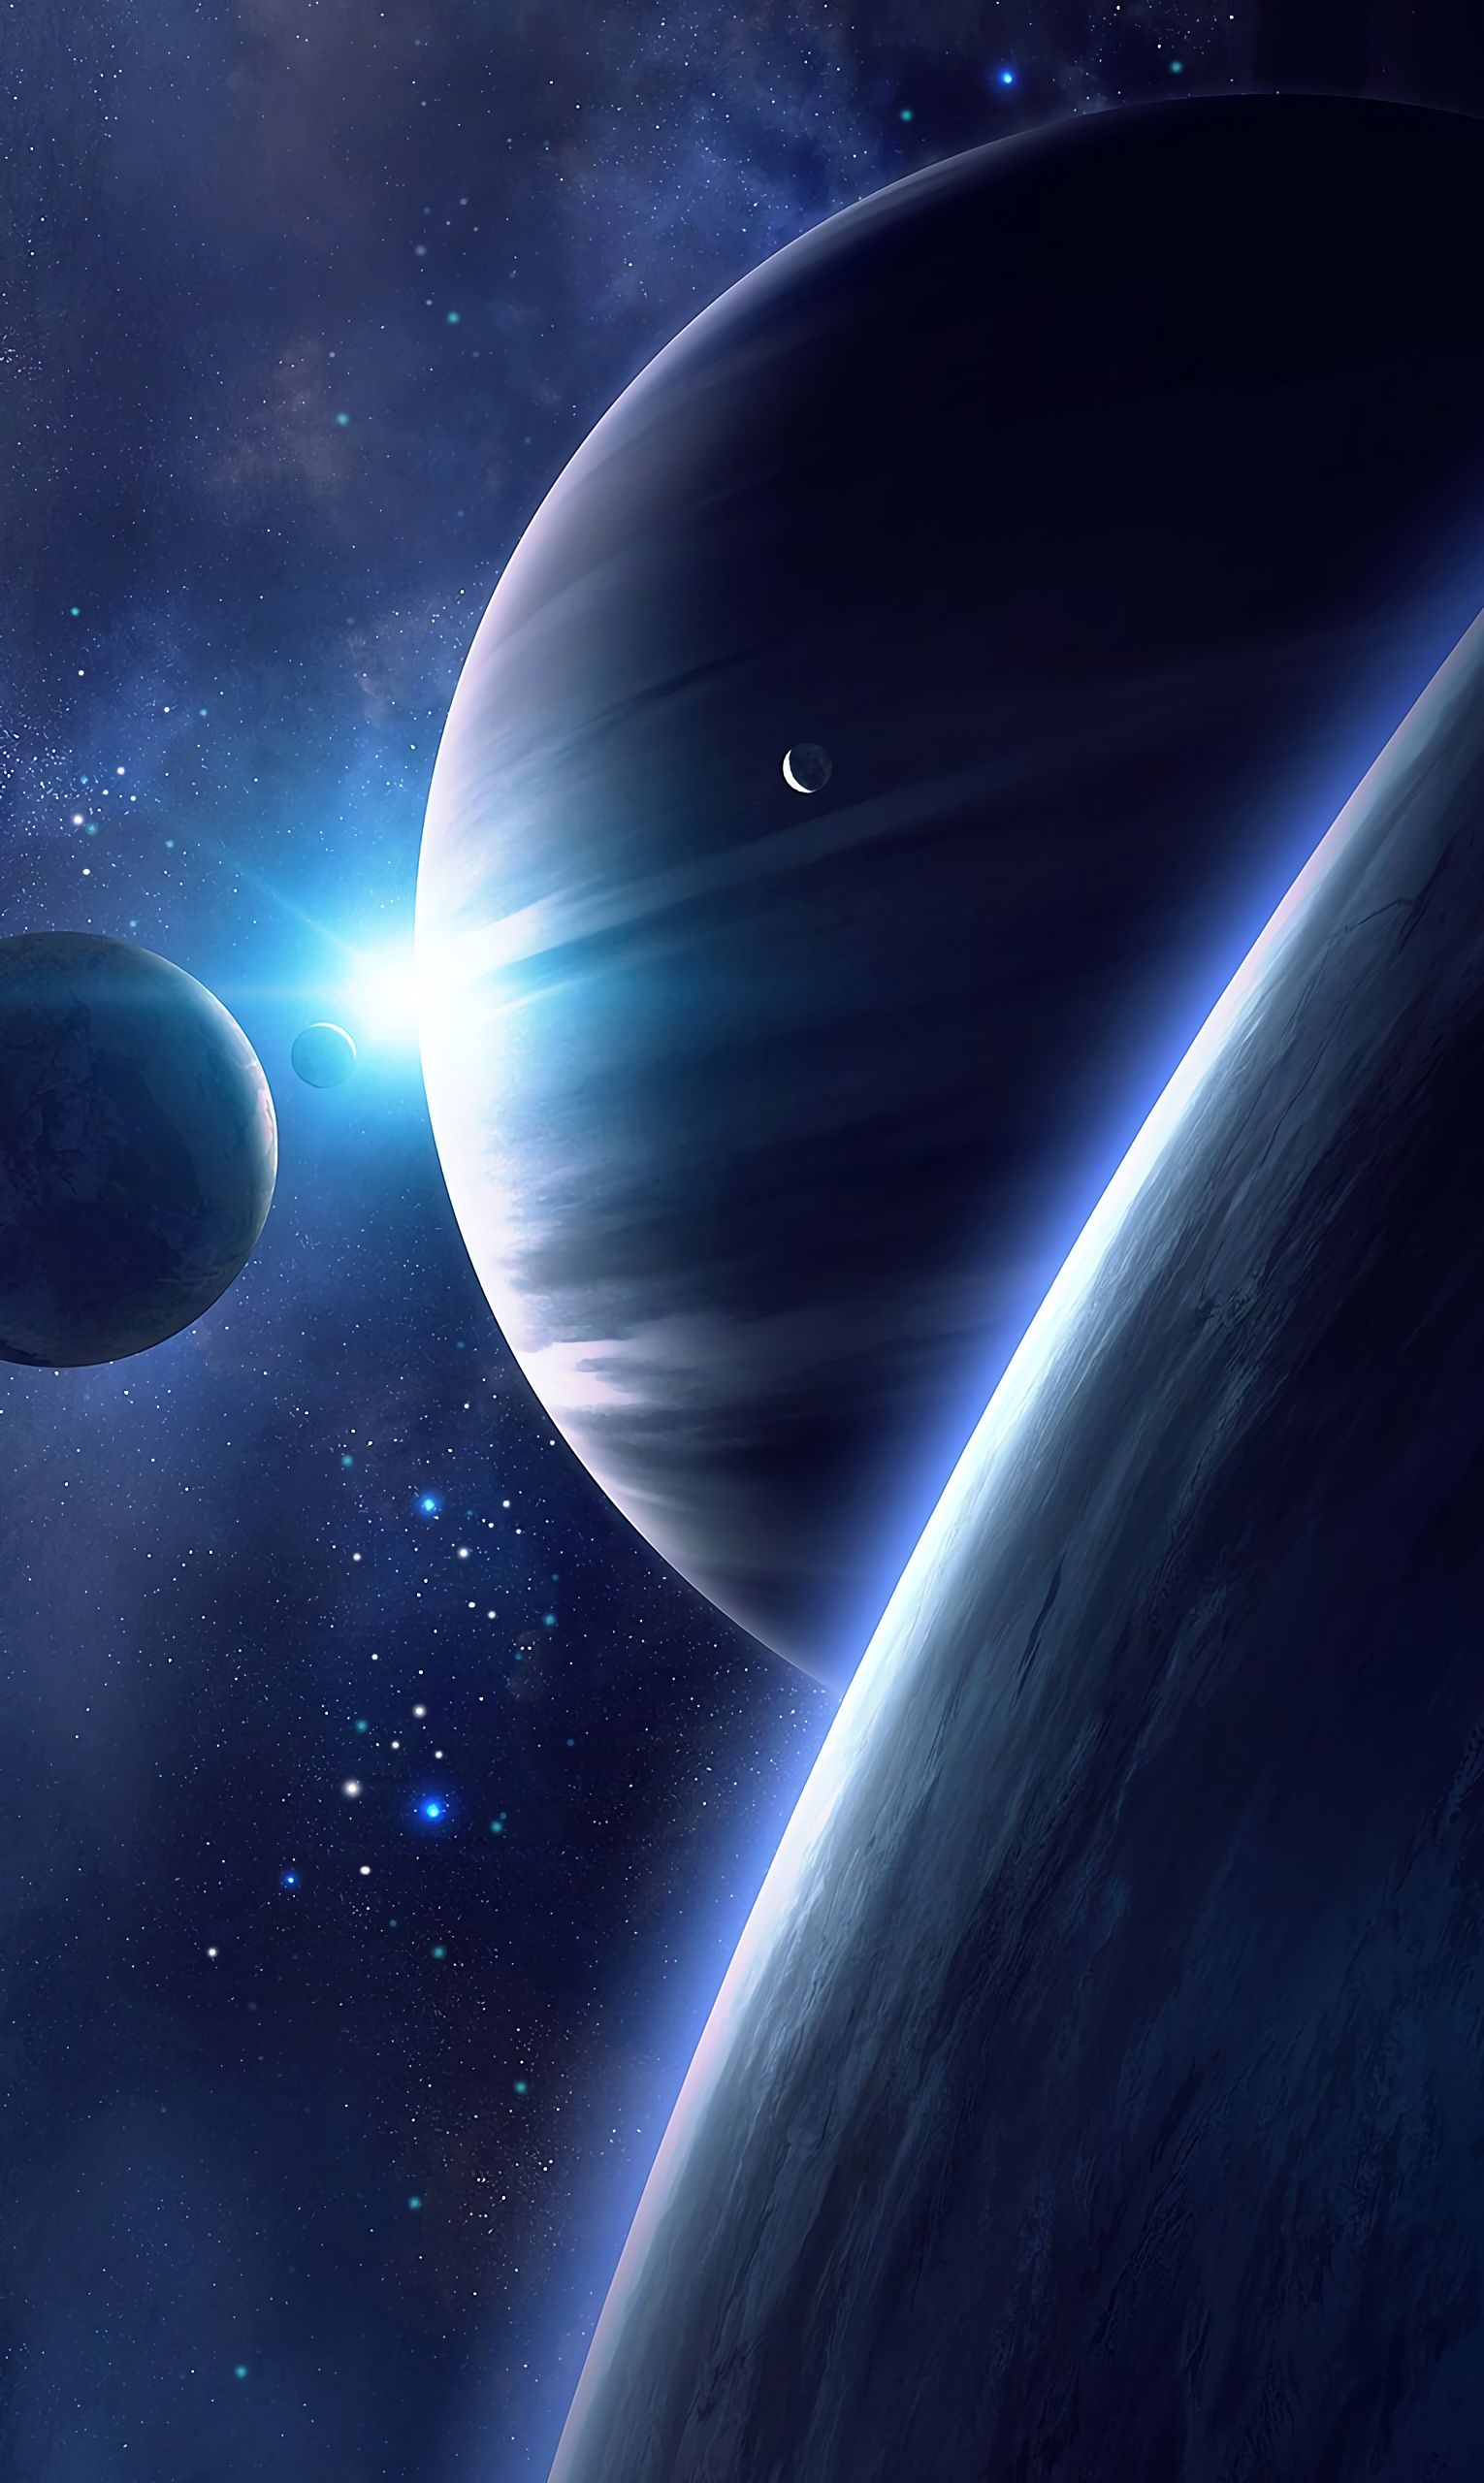 108938 download wallpaper Universe, Planets, Stars, Shine, Brilliance, Satellite screensavers and pictures for free